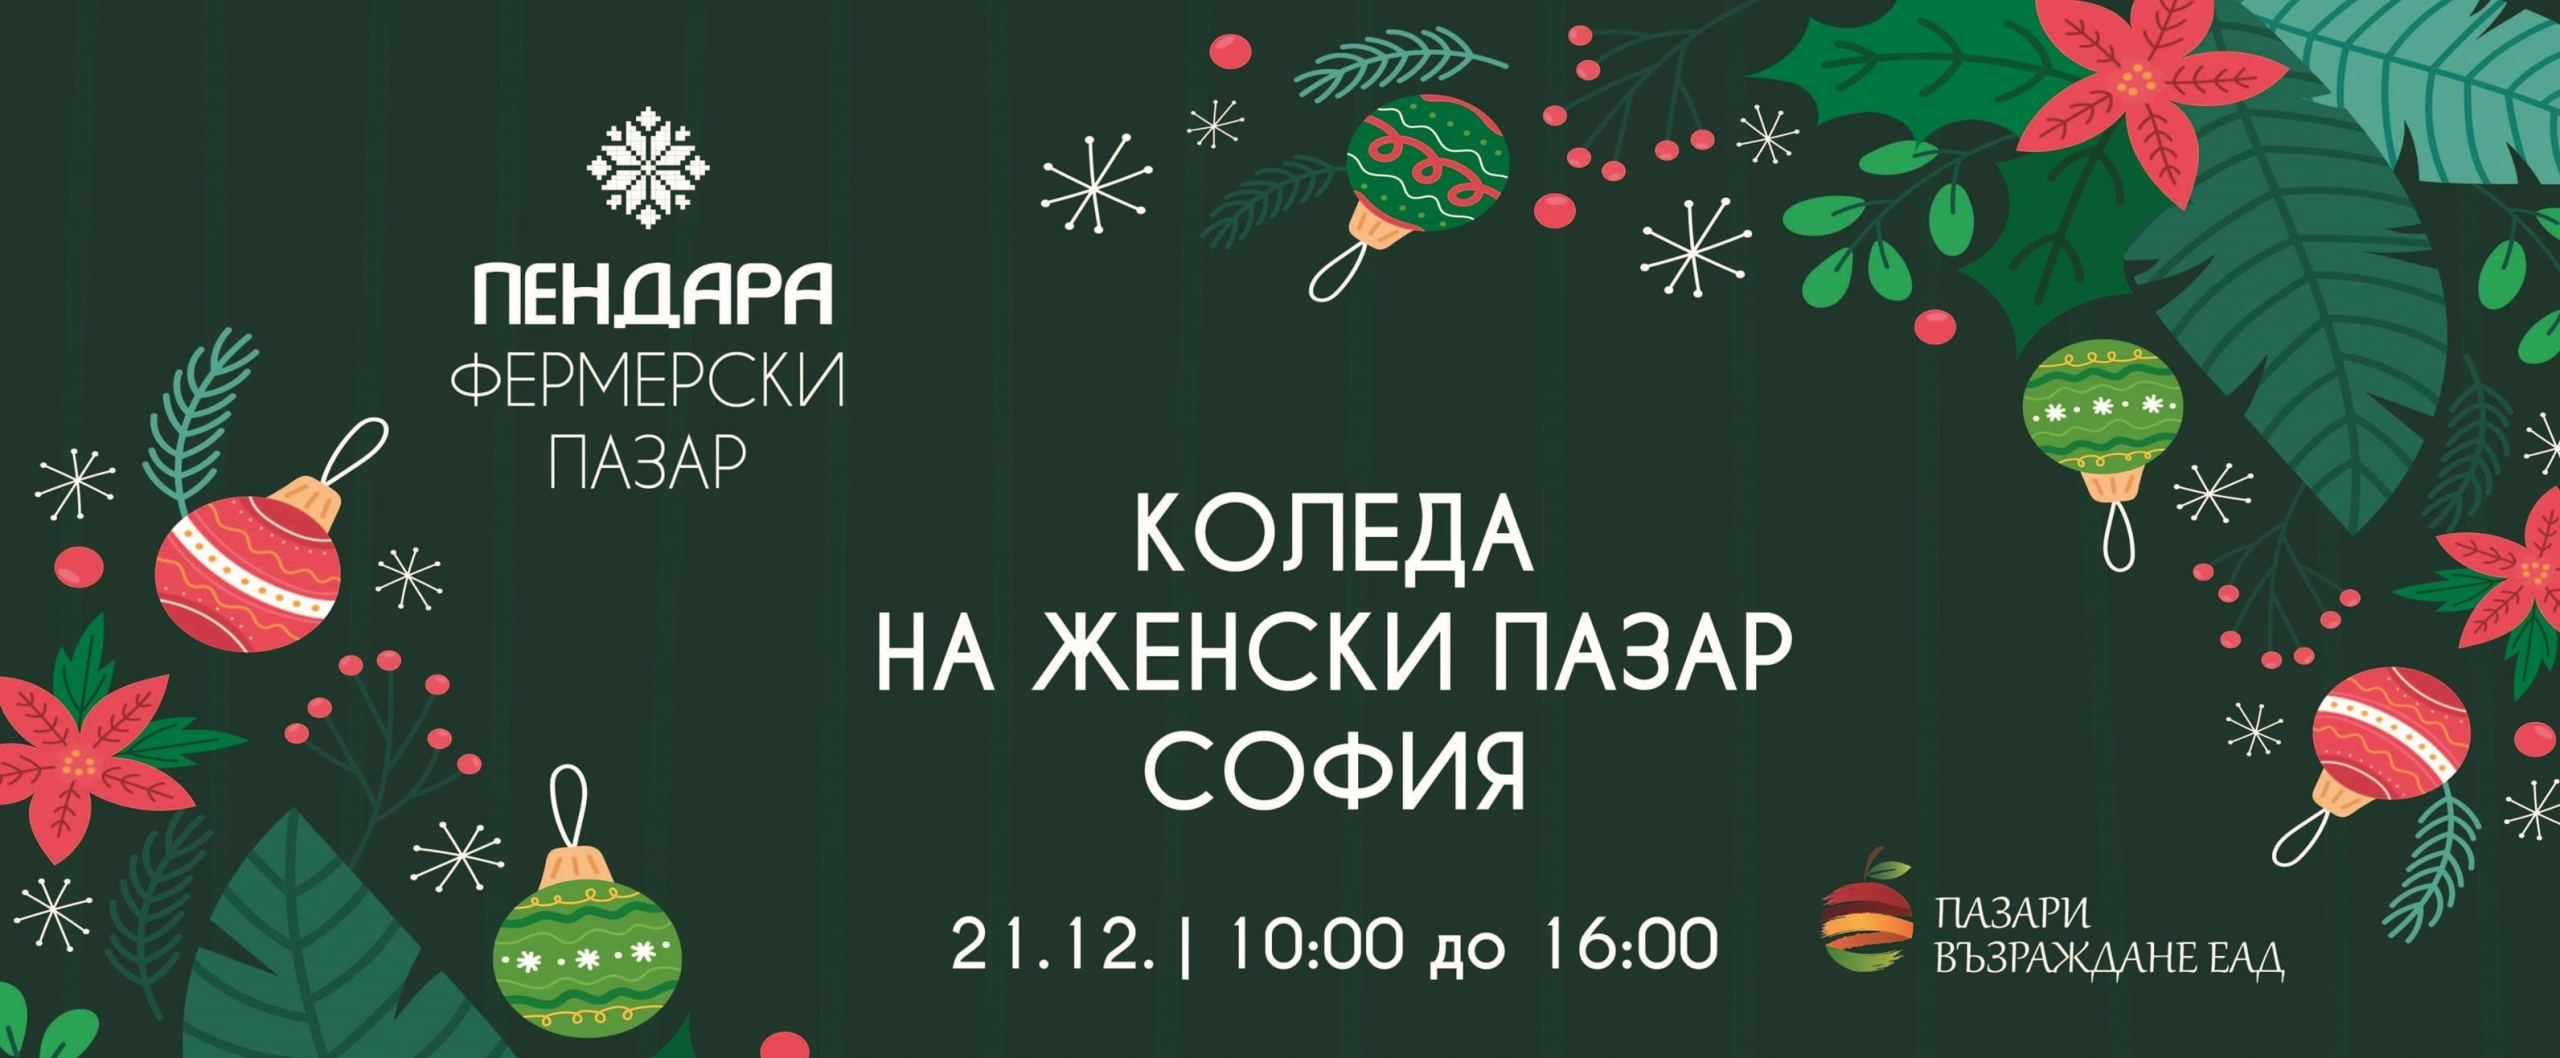 A Competition for Mulled Wine and Rakia at the Christmas Farmer's Market Pendara at the Zhenski Pazar Market this Saturday